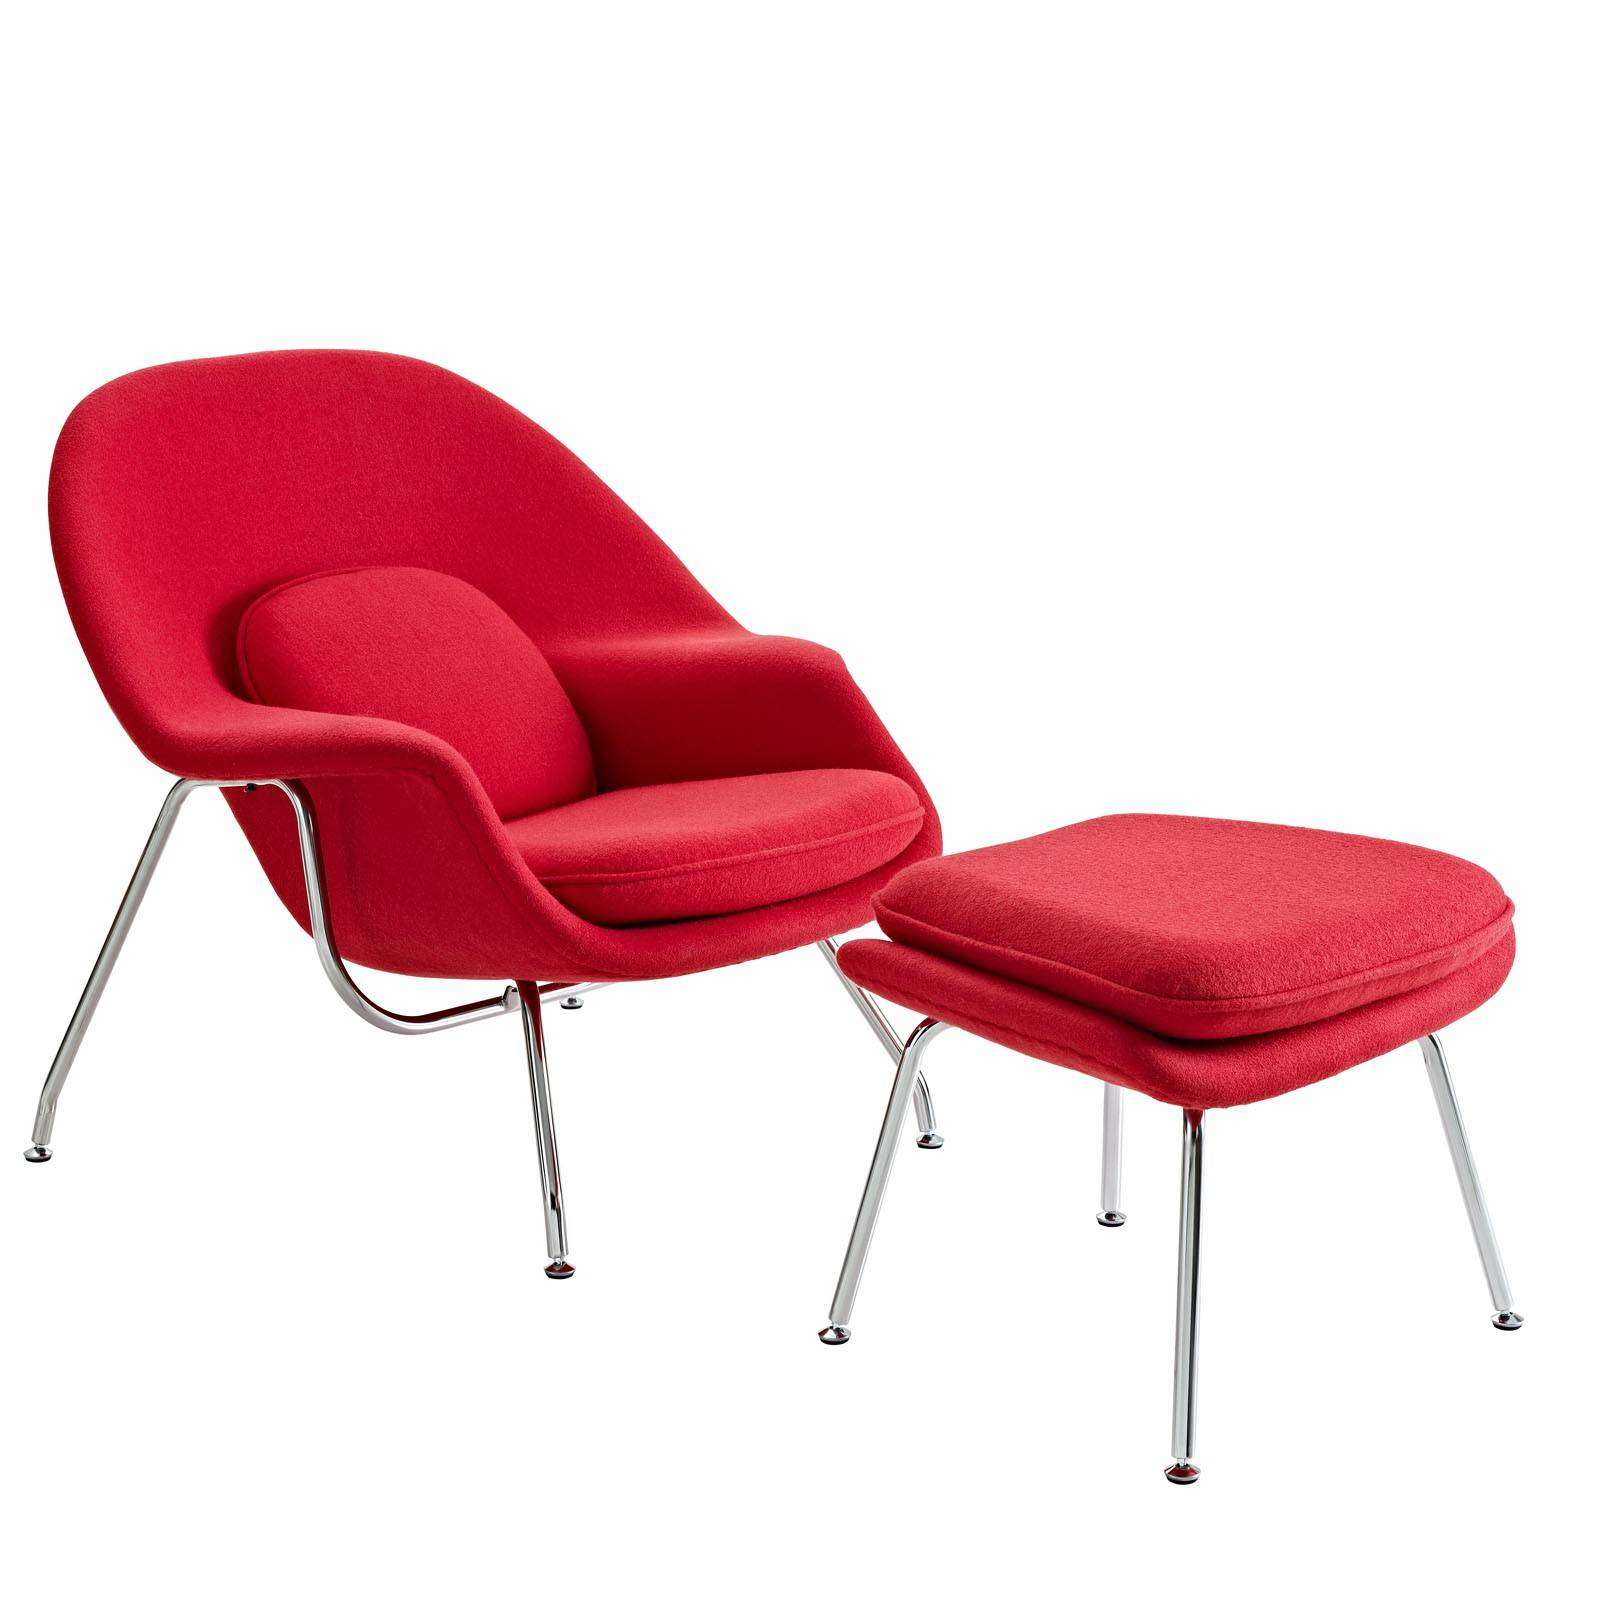 Womb chair saarinen lounge ottoman modterior - Saarinen womb chair reproduction ...